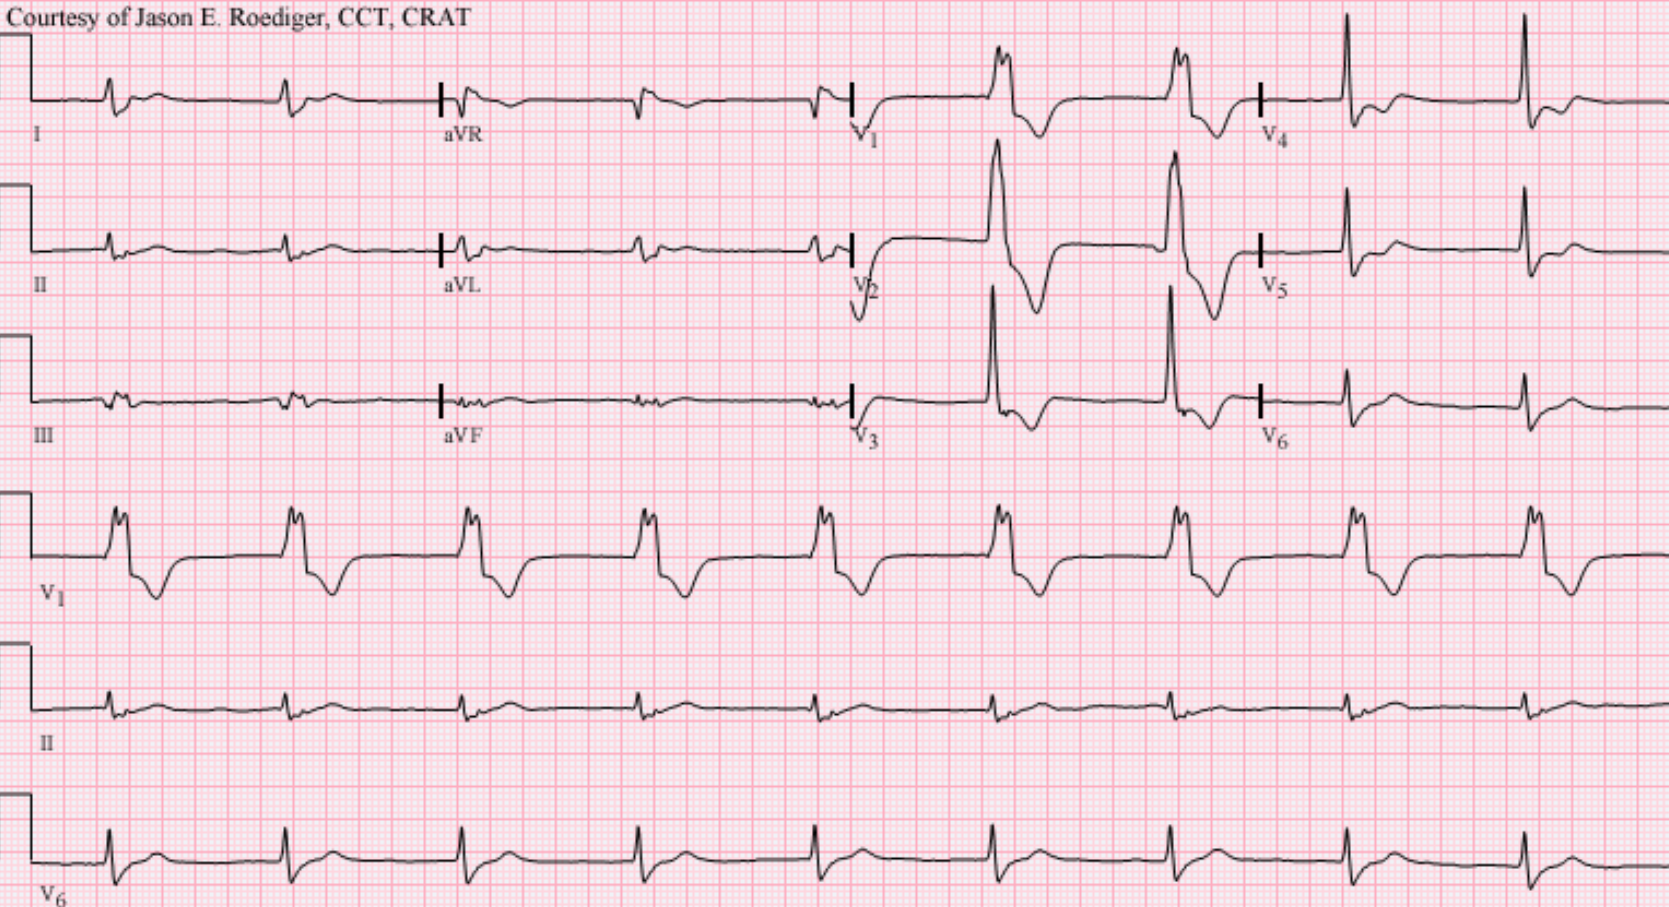 "Accelerated idioventricular rhythm (AIVR) at a rate of 55/min presumably originating from the left ventricle (LV). Note the typical QRS morphology in lead V1 characteristic of ventricular ectopy from the LV. Monophasic R-wave with smooth upstroke and notching on the downstroke (i.e., the so-called taller left peak or ""rabbit-ear"".)"